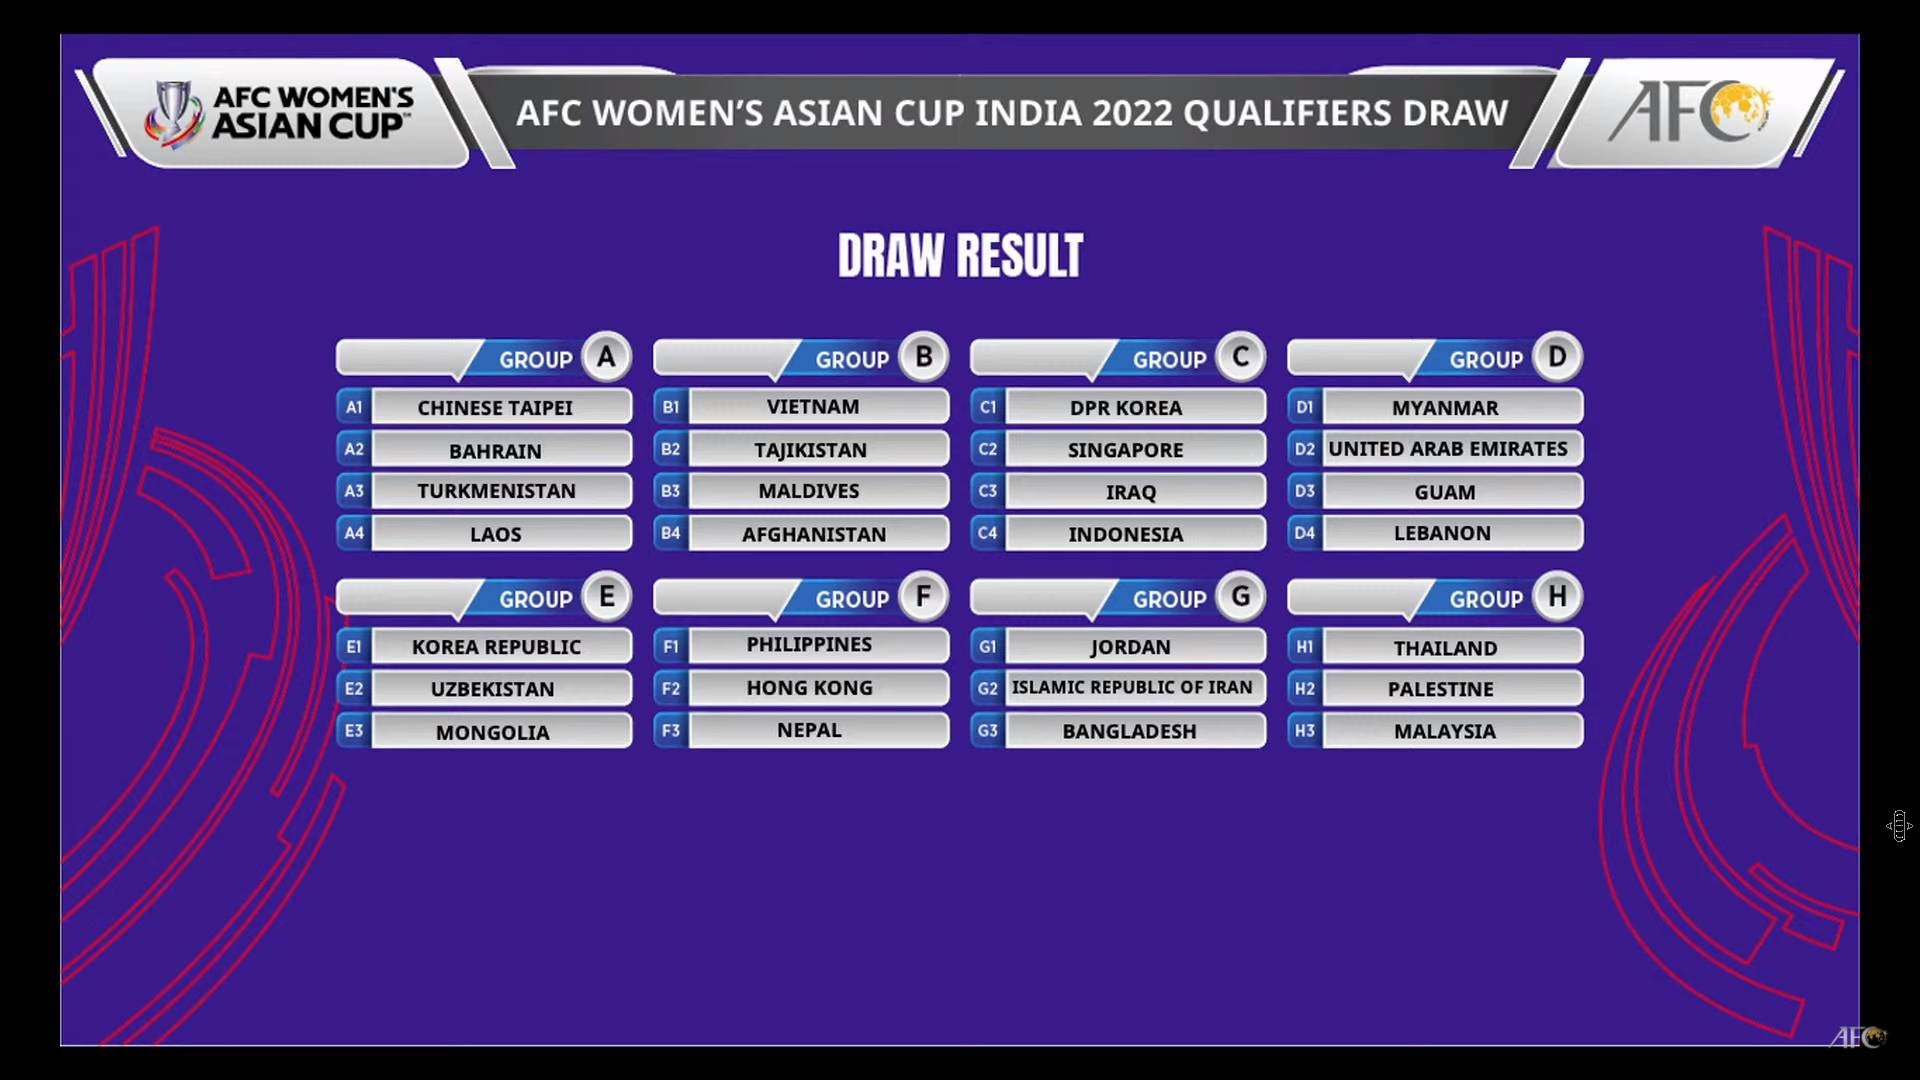 AFC-Womens-Asian-Cup-India-2022-Qualifiers-Draw-Ceremony-2-Credit-to-AFC PWNFT pooled with Hong Kong, Nepal for Women's World Cup Qualifiers Football News Philippine Malditas  - philippine sports news